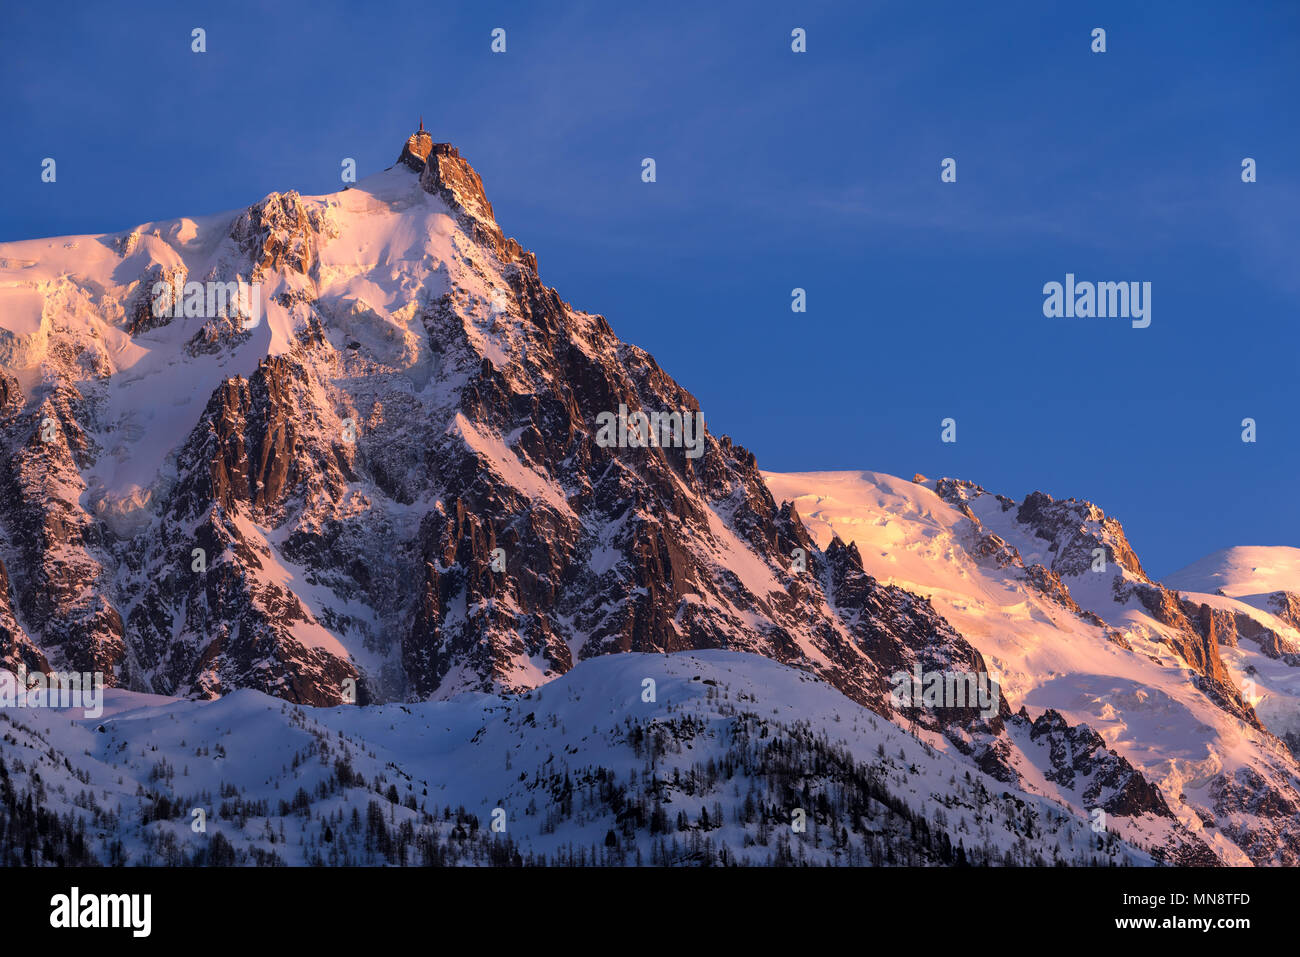 Aiguille du Midi needle at sunset with view on the glaciers of the Mont Blanc mountain range. Chamonix, Haute-Savoie (Upper Savoy), Alps, France - Stock Image